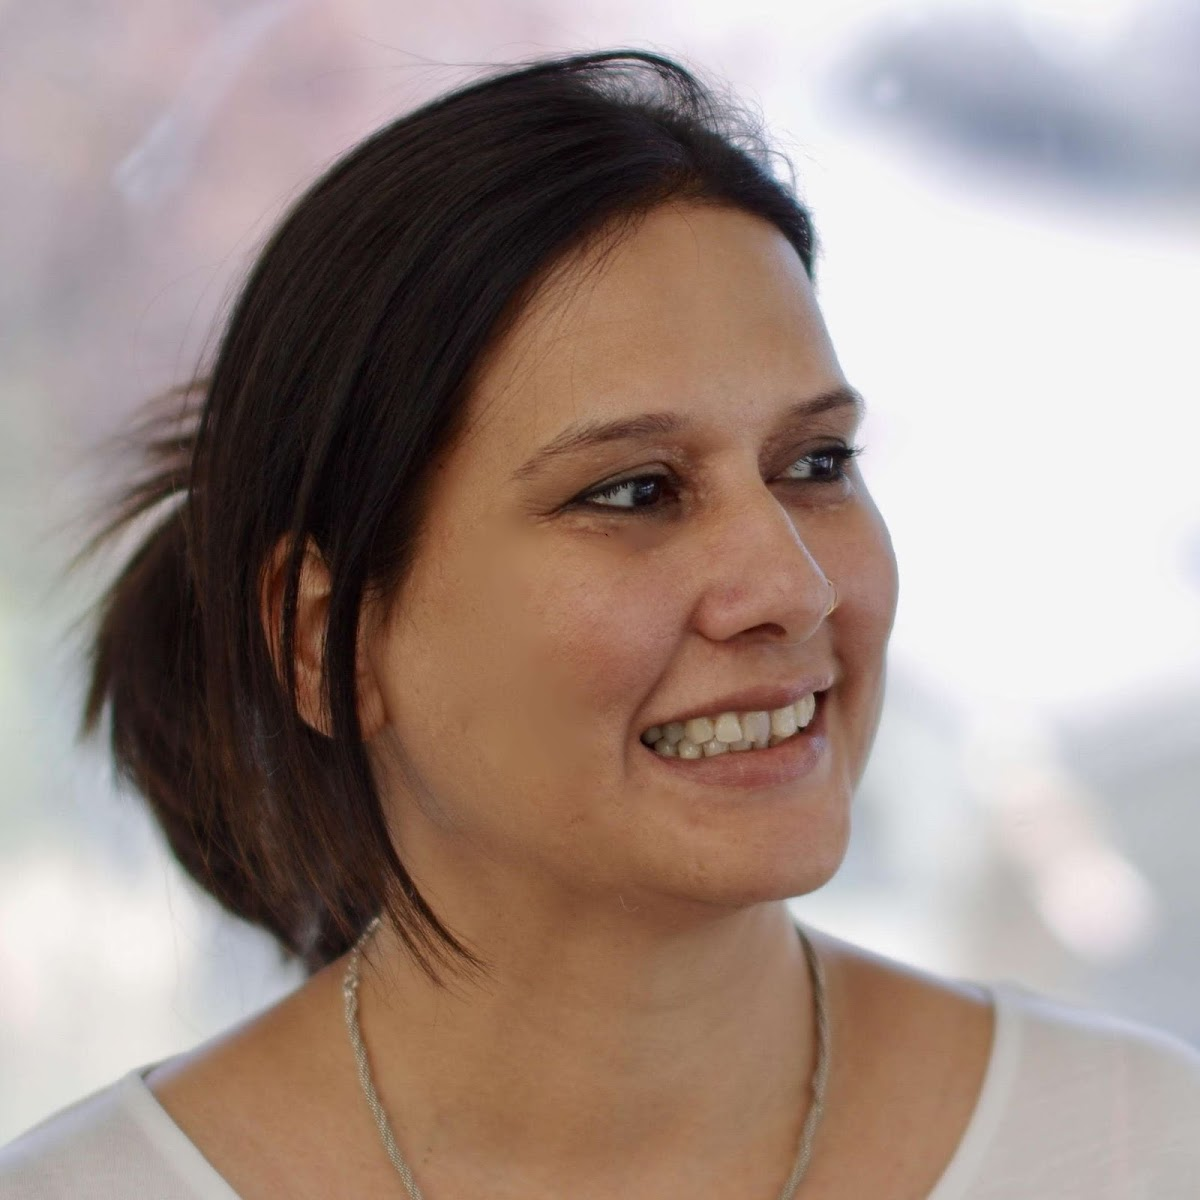 Traydstream welcomes Sara Hasan as Client Onboarding Director